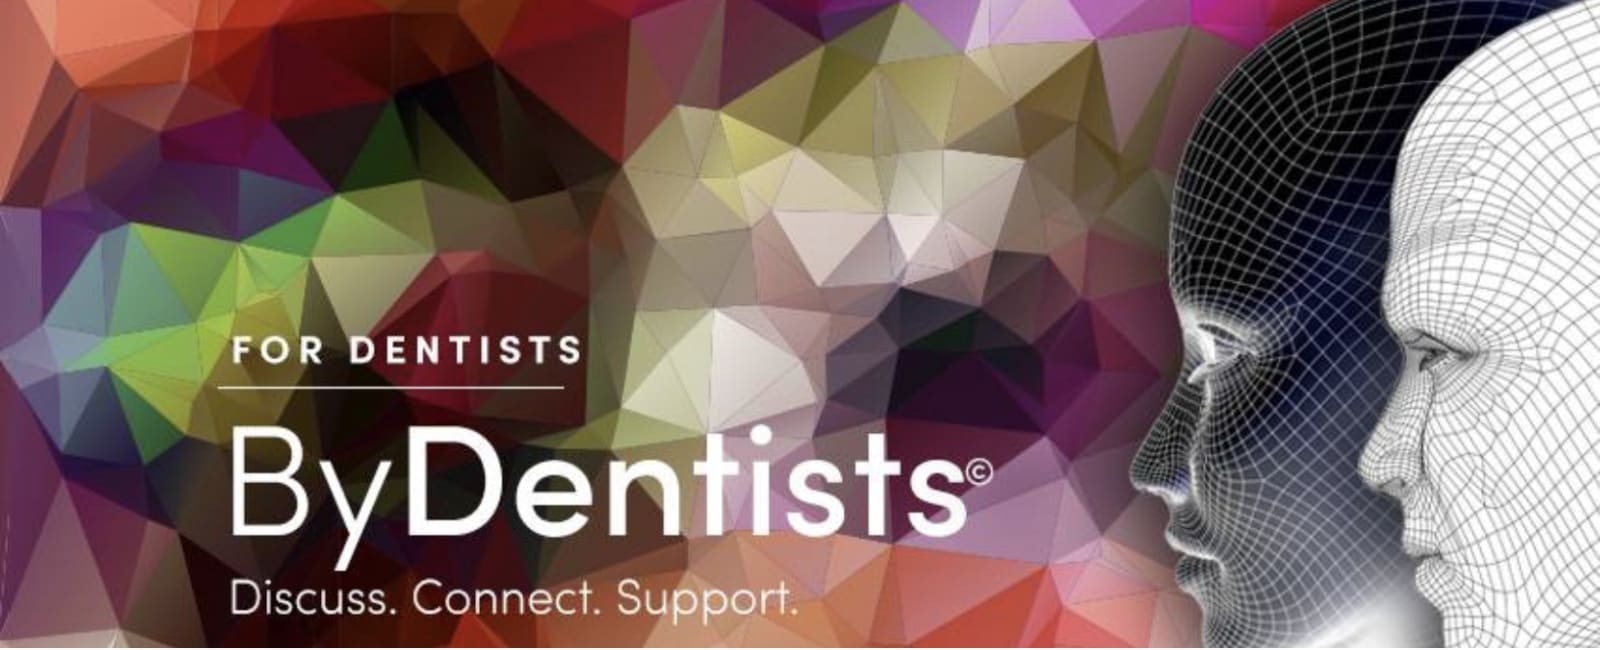 For Dentists, By Dentists